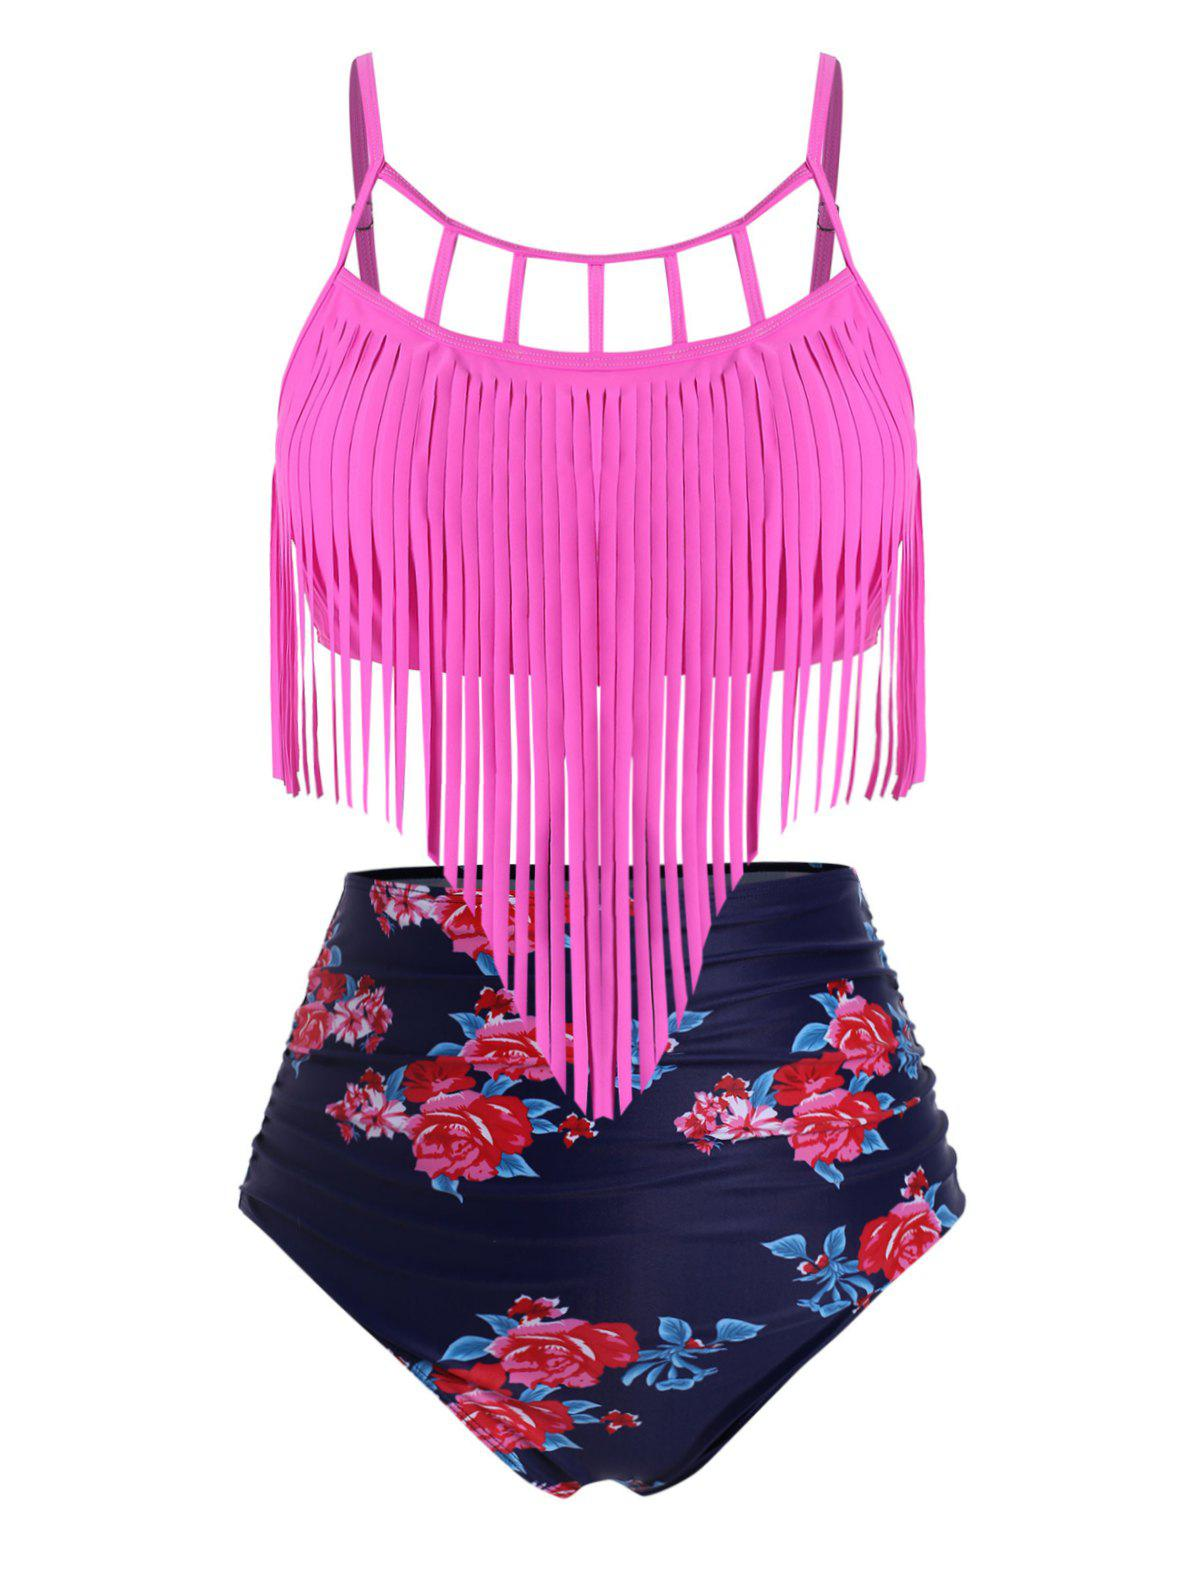 Chic Ruched Fringed Floral High Waisted Plus Size Tankini Swimsuit